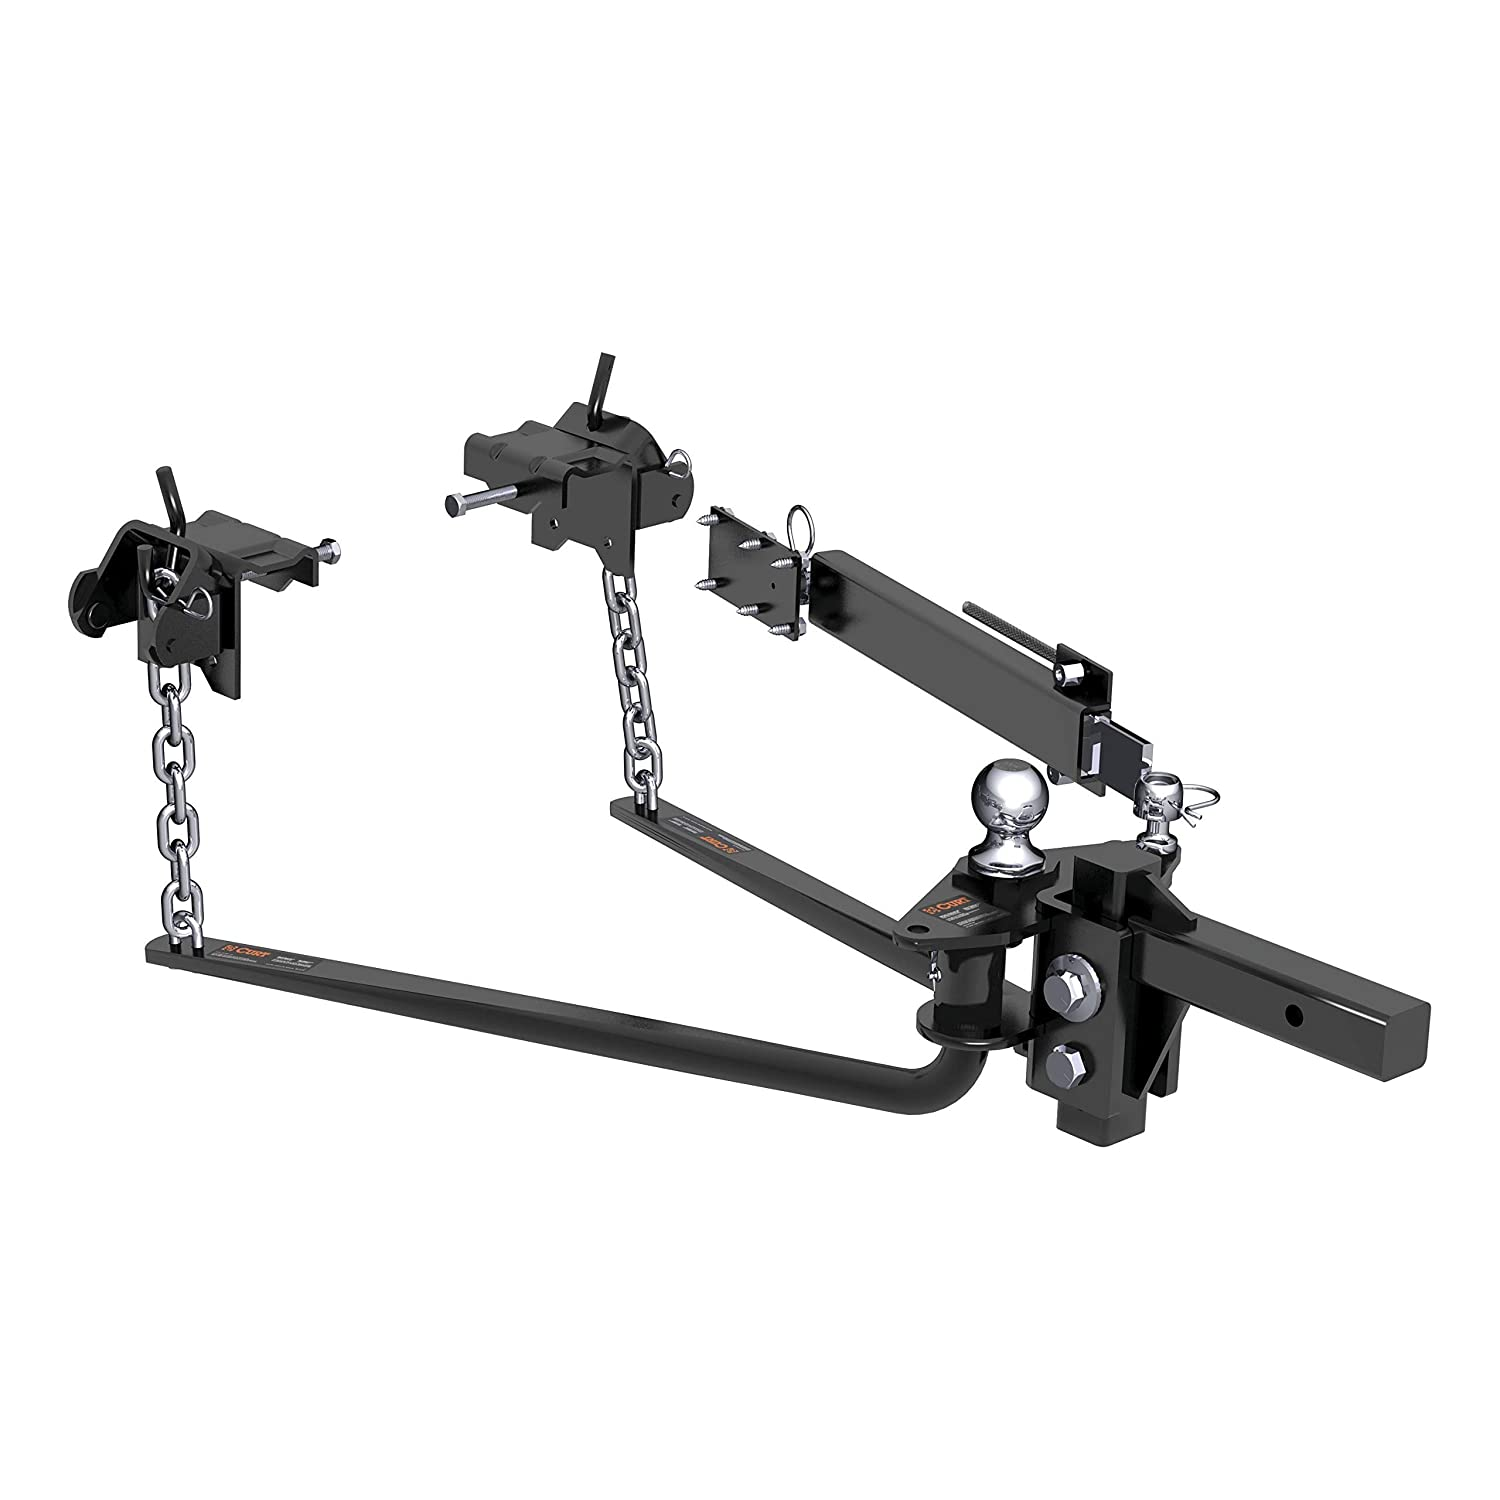 14,000 lbs. GTW, 2 Shank, 2-5//16 Ball CURT 17063 MV Black Round Bar Weight Distribution Hitch with Sway Control Kit